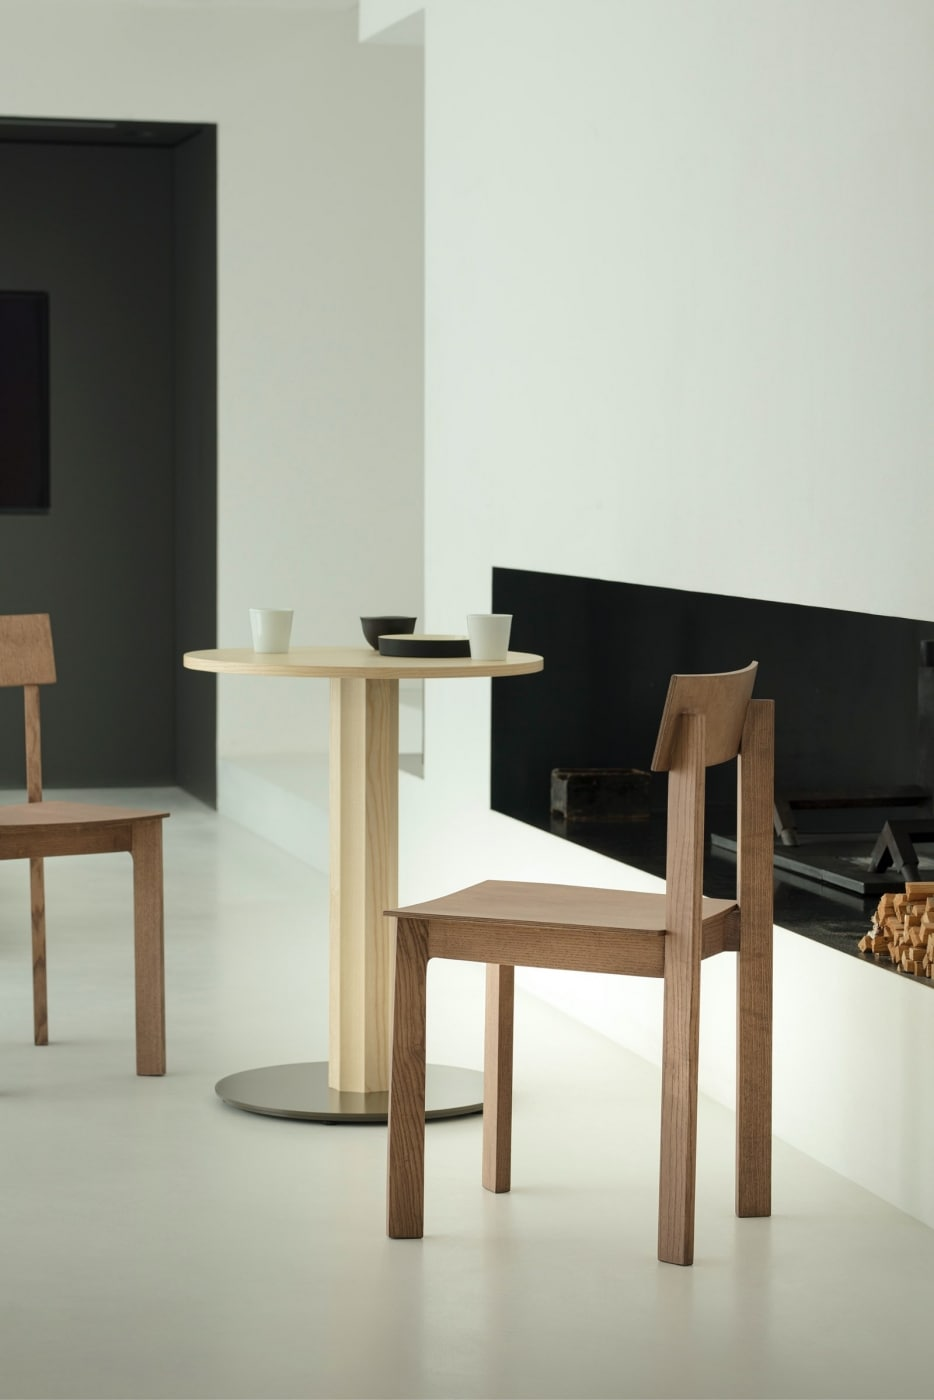 Furniture Design by London Studio Mentsen 10